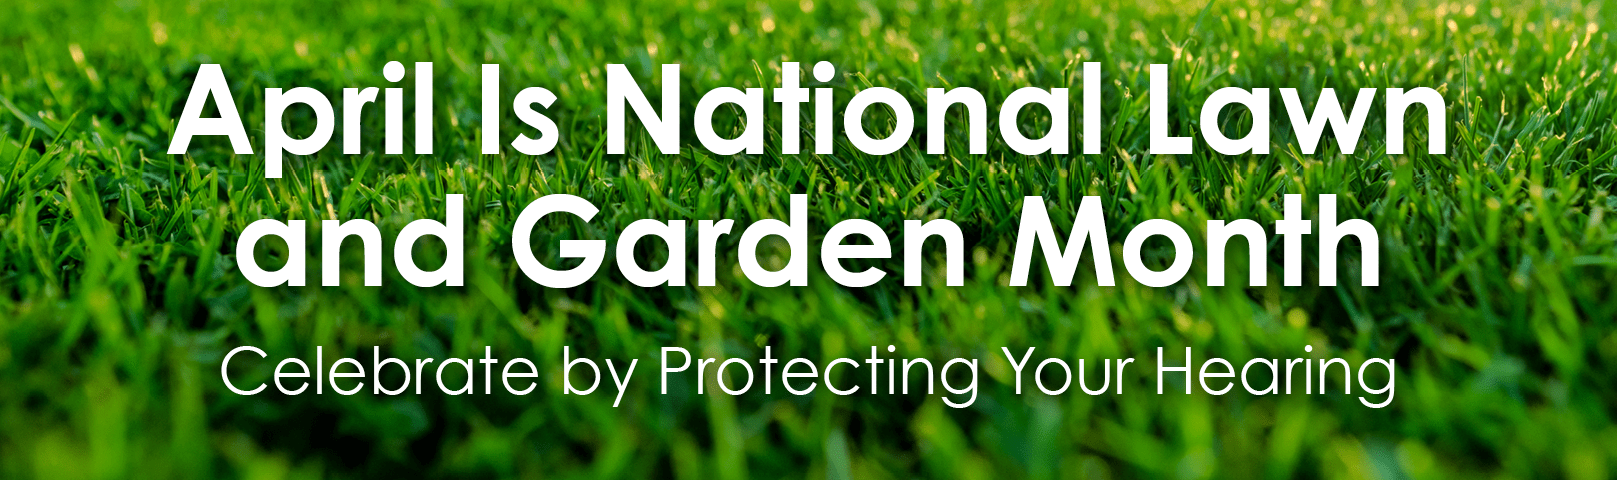 Celebrate Lawn & Garden Month by Protecting Your Hearing